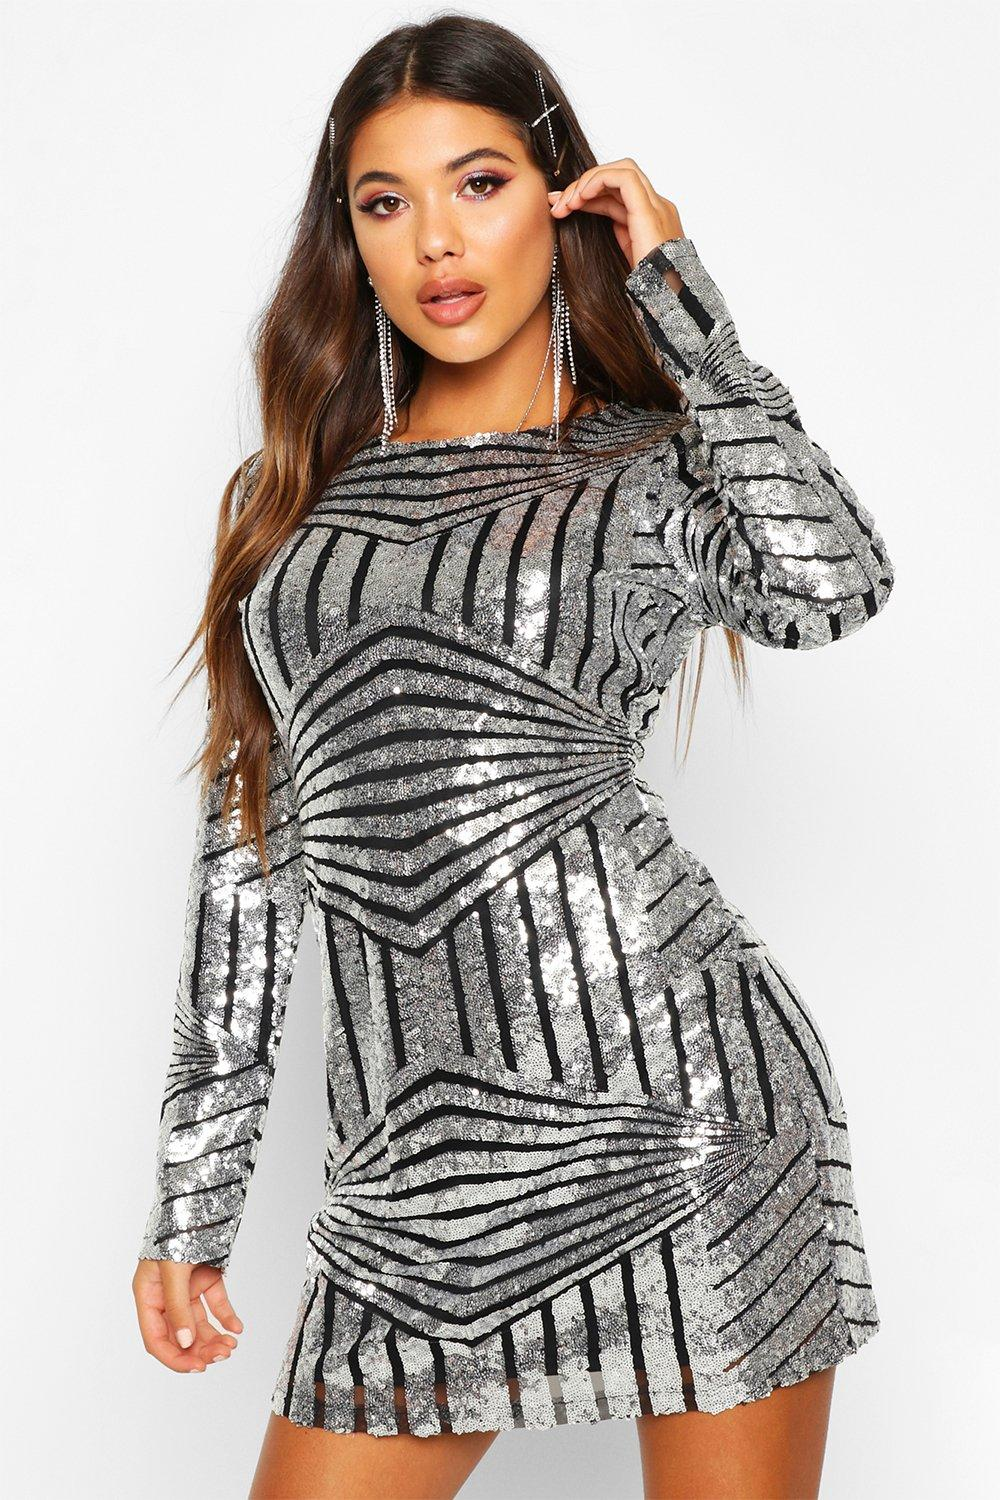 719e6703e634 Boutique Sequin Mesh Bodycon Dress. Hover to zoom